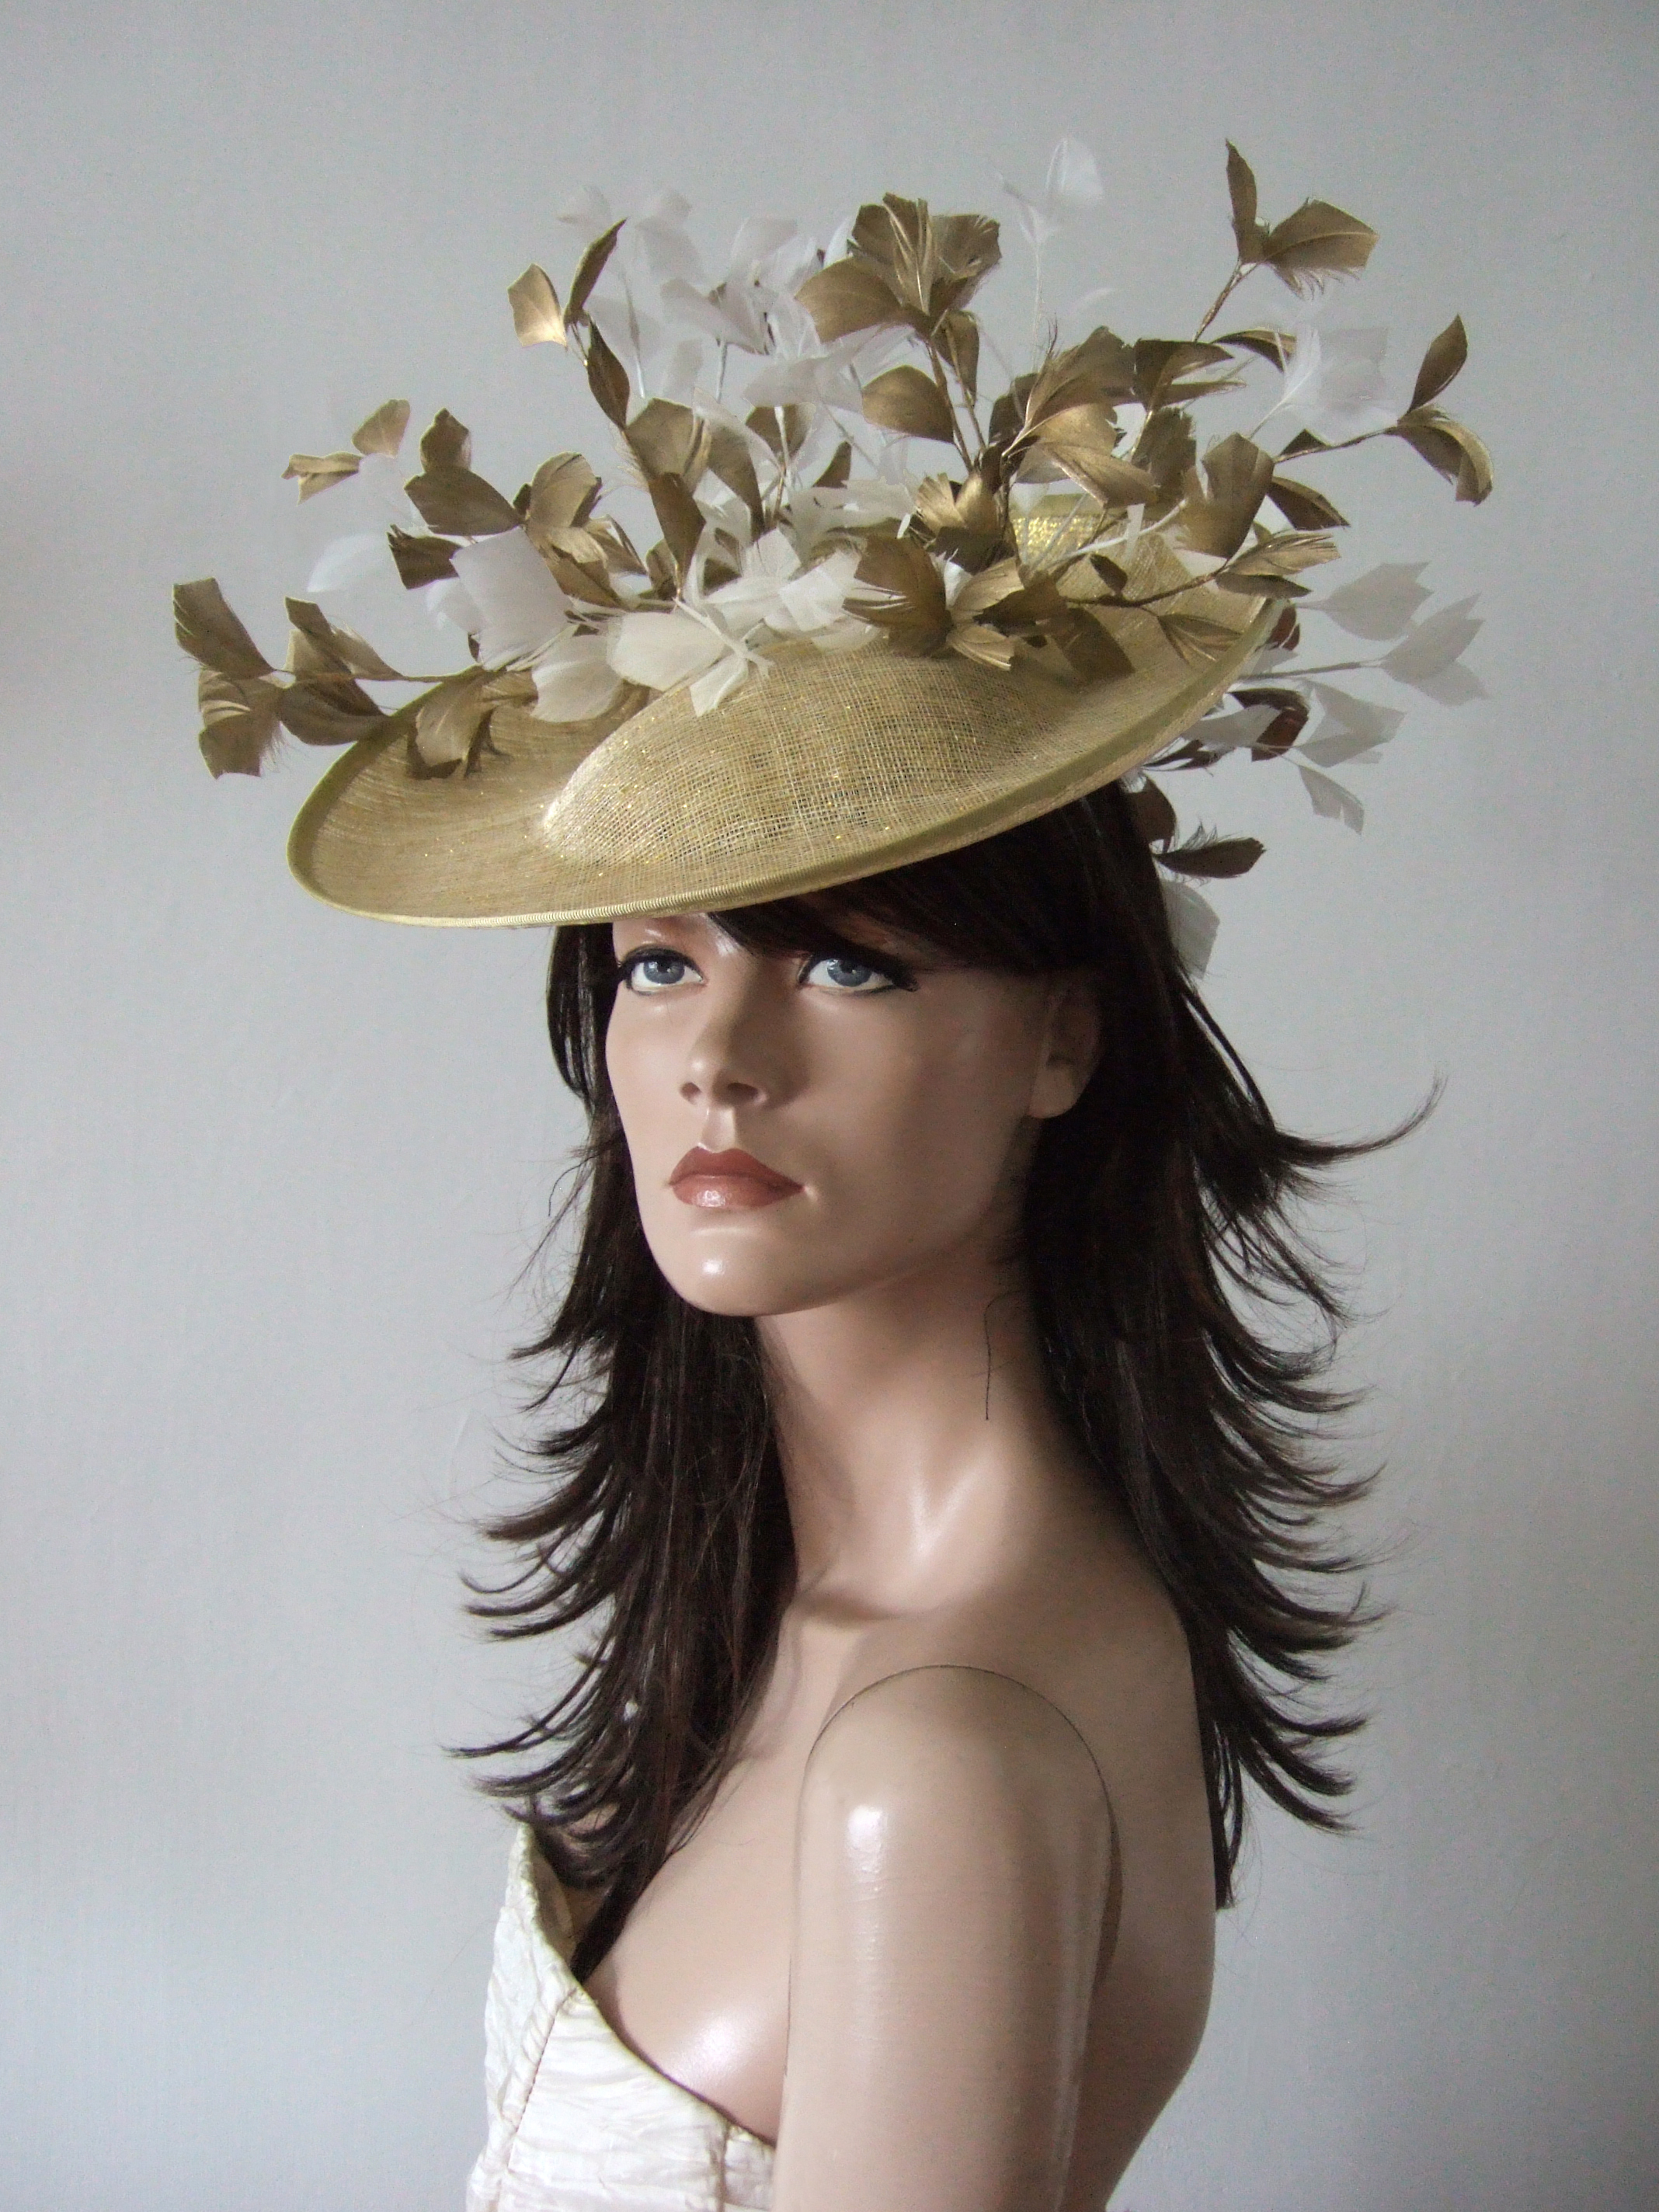 Gold and white Formal Wedding Guest Hats 2020. Gold and White Hats for Royal Ascot 2021. Gold and White Hatinator Hats, Formal Hat Hire 2020. Hat Hire Berkshire. Wedding guest hats 2020. Hats for Hire 2020. Gold and White Ladies Wedding Hats. Gold Mother of the Bride Hats 2020. Royal Ascot Hat Rental 2021. Wedding Hats for Hire UK 2020. Hire Hats for Epsom Races 2021. Hats for Cheltenham Races 2021.